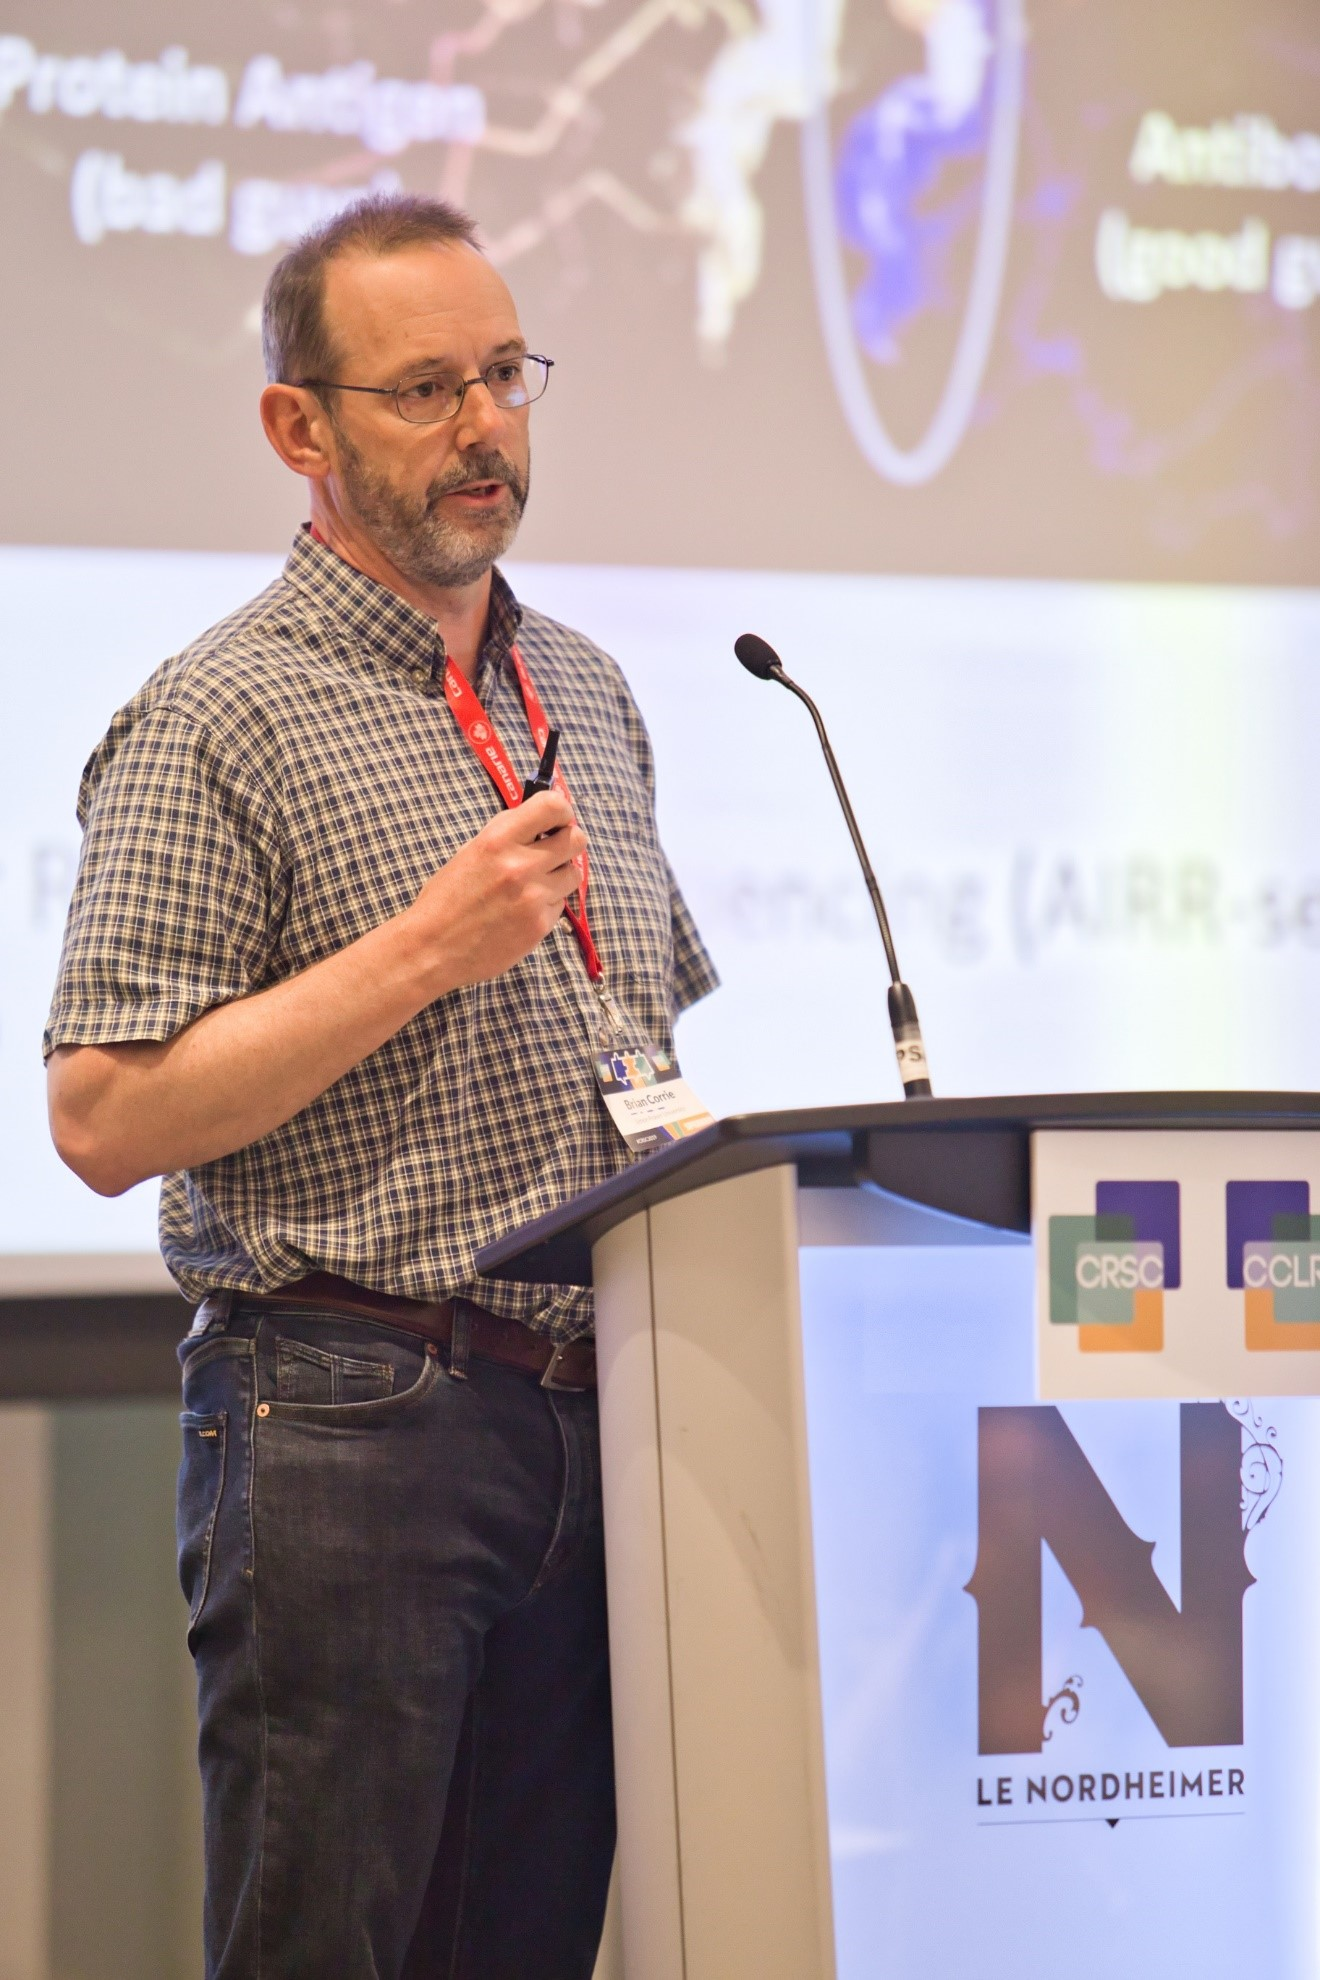 iReceptor Plus presented at the Canadian Research Software Conference in Montreal